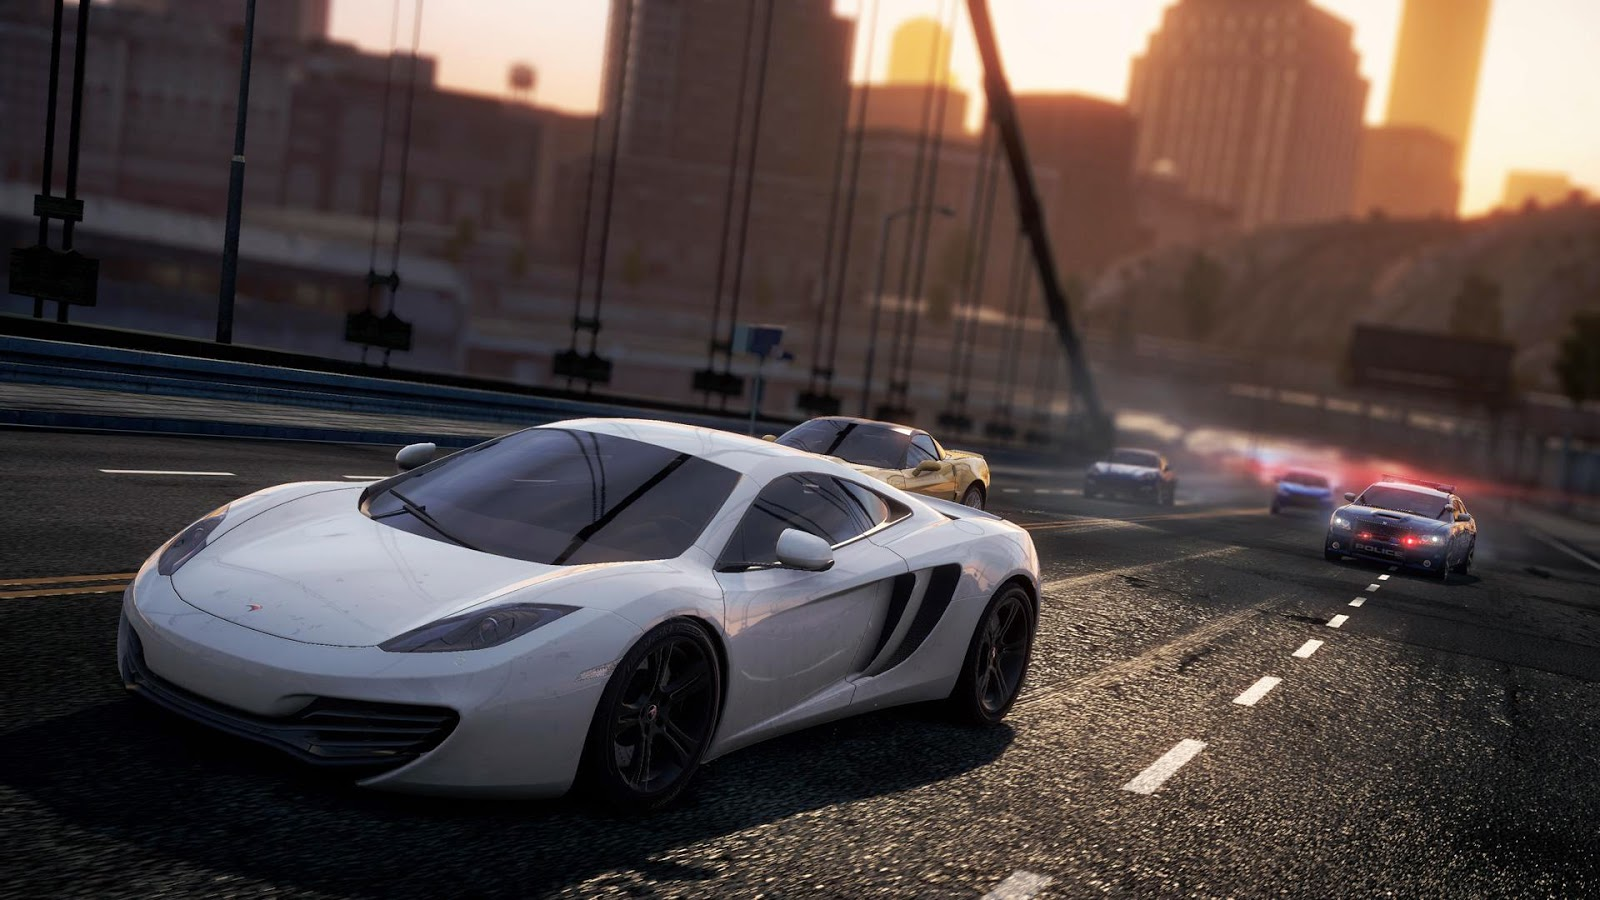 Need For Speed Most Wanted Wallpaper Atau DP BBM HD Khusus